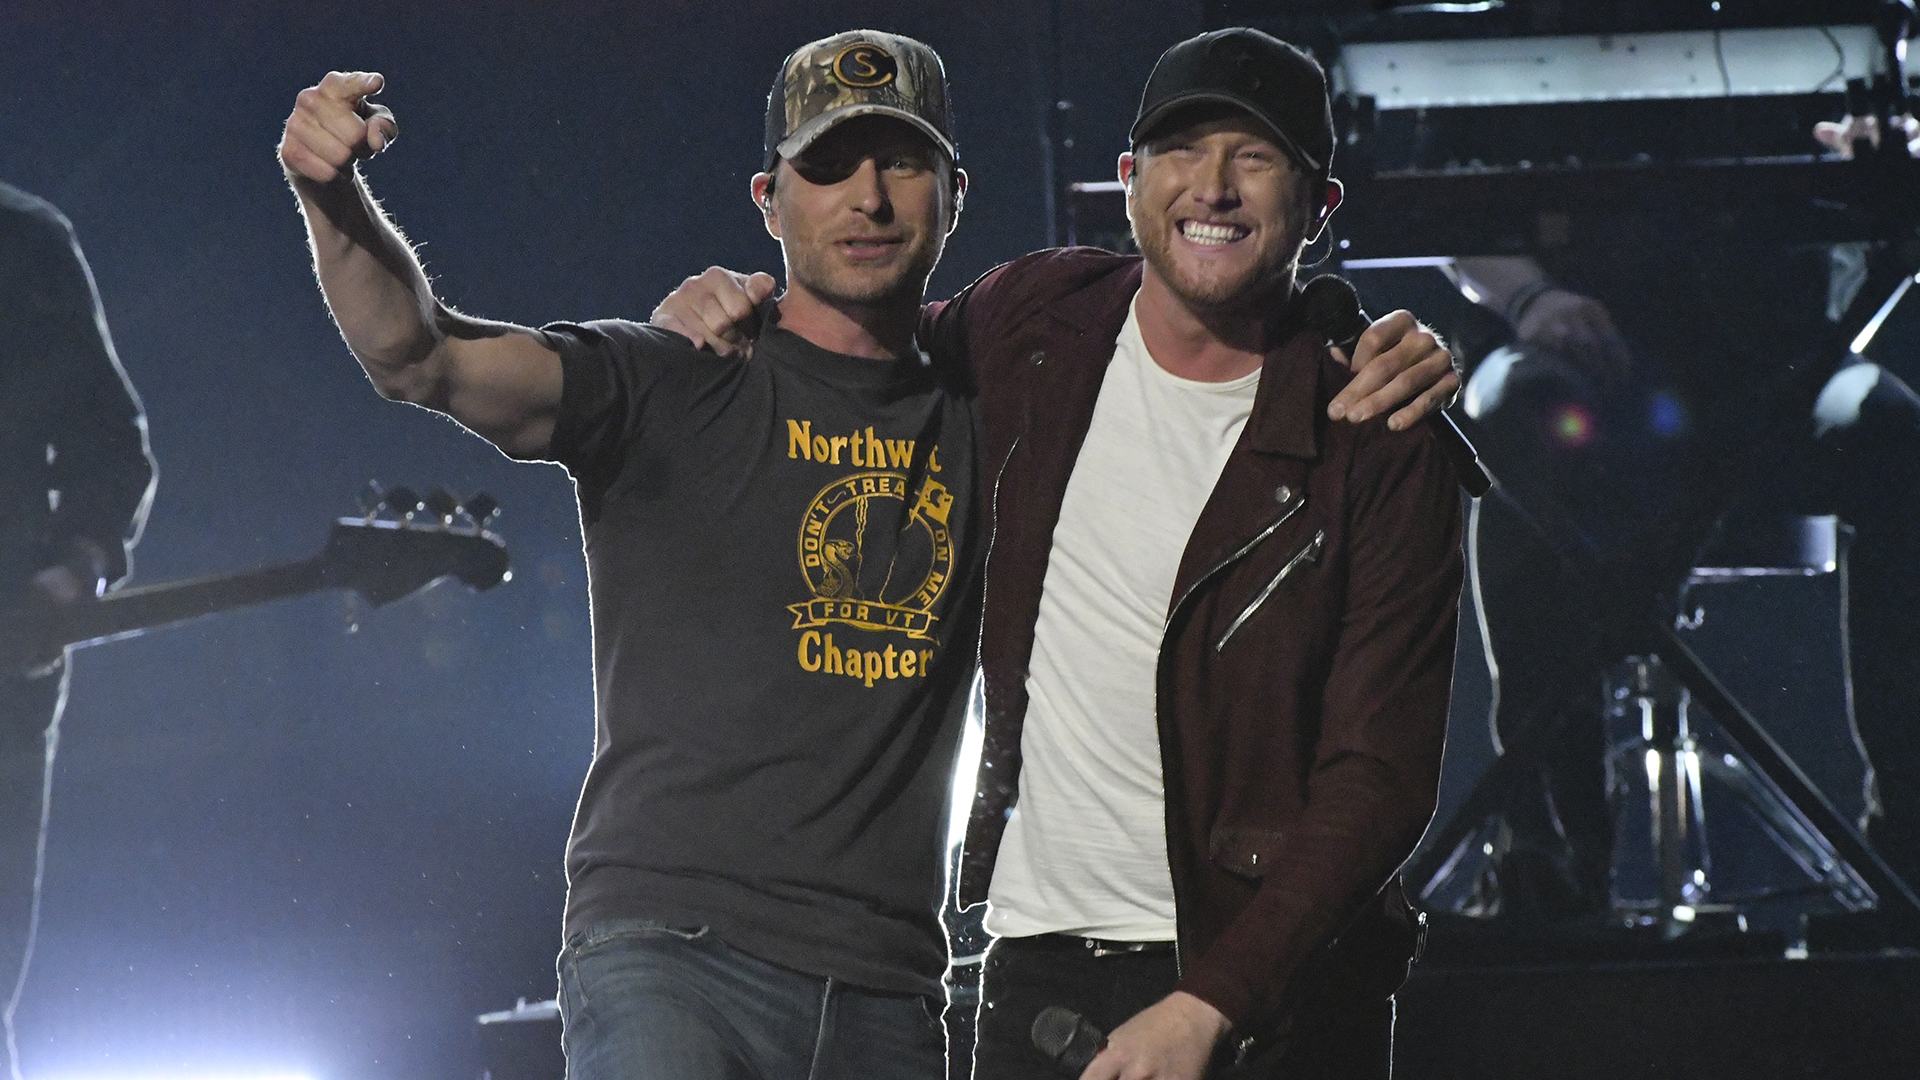 Cole Swindell and Dierks Bentley perform